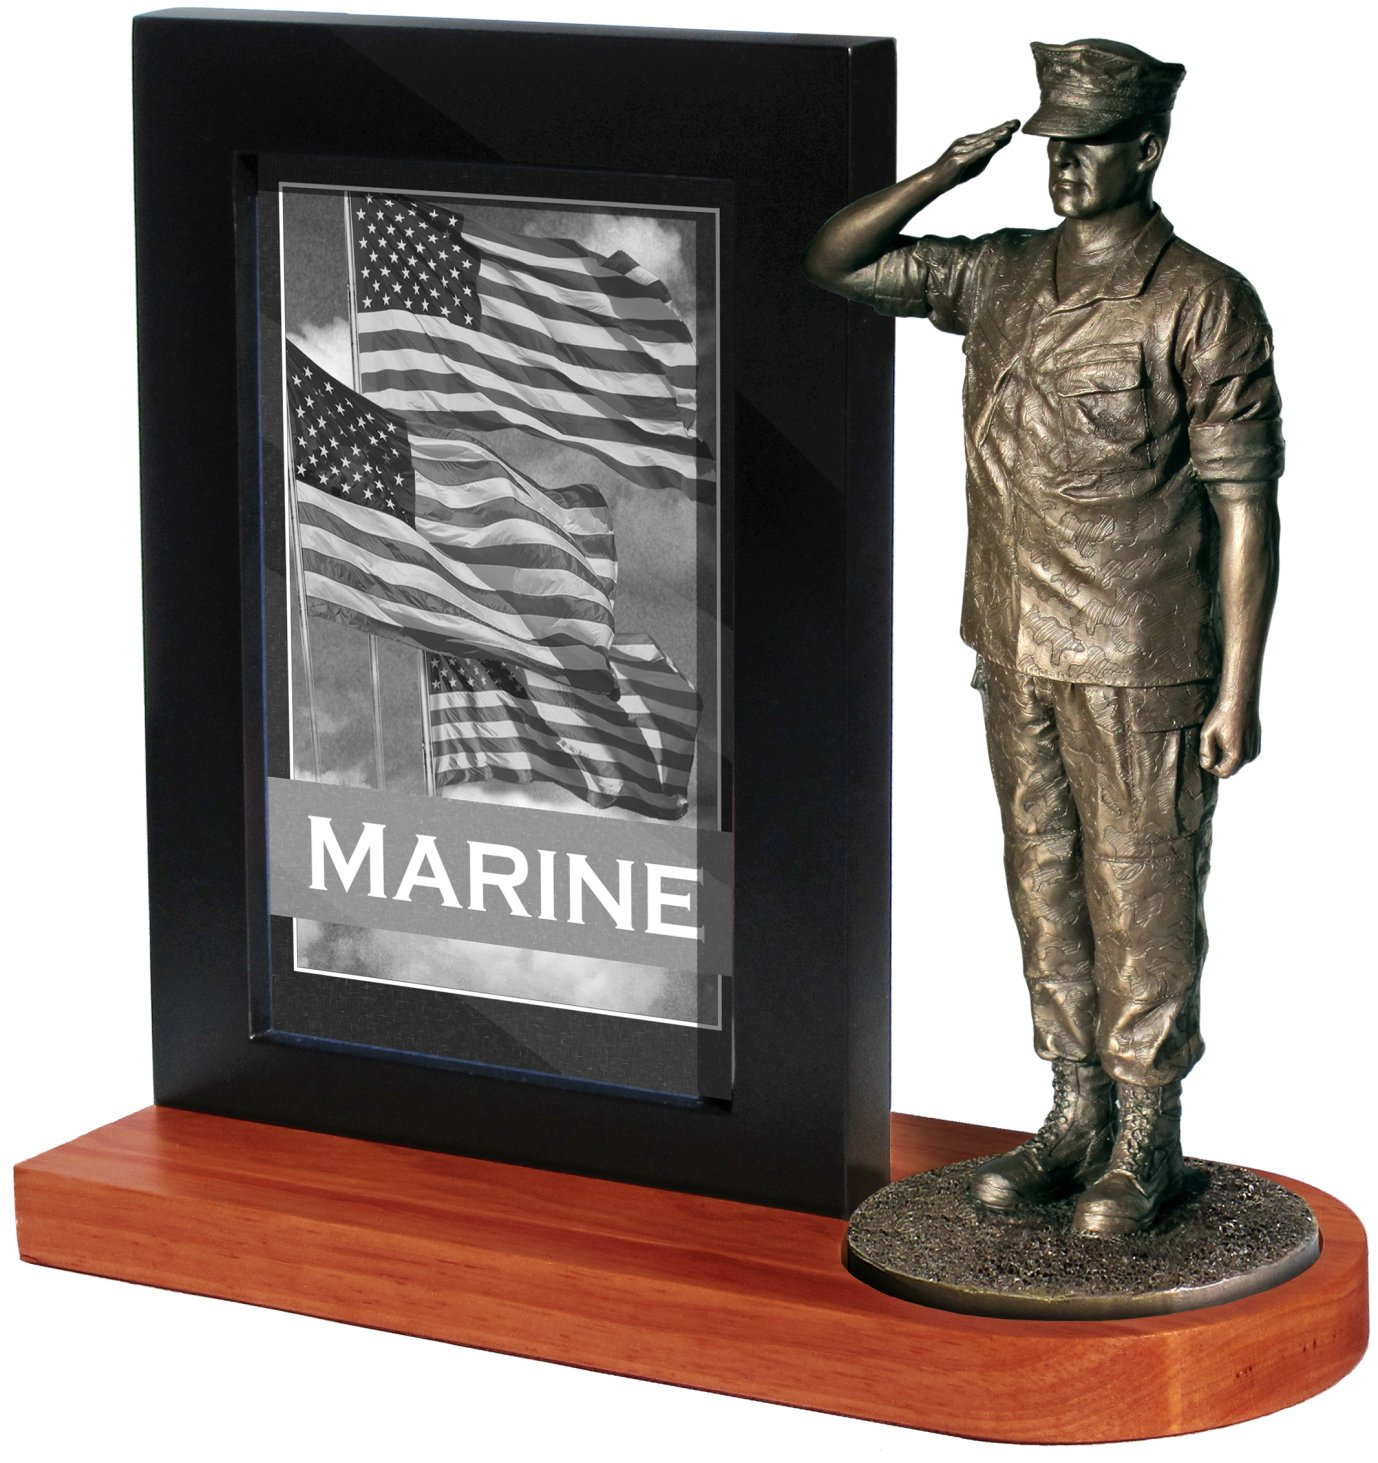 Marine Salute with Photo frame and Wood base